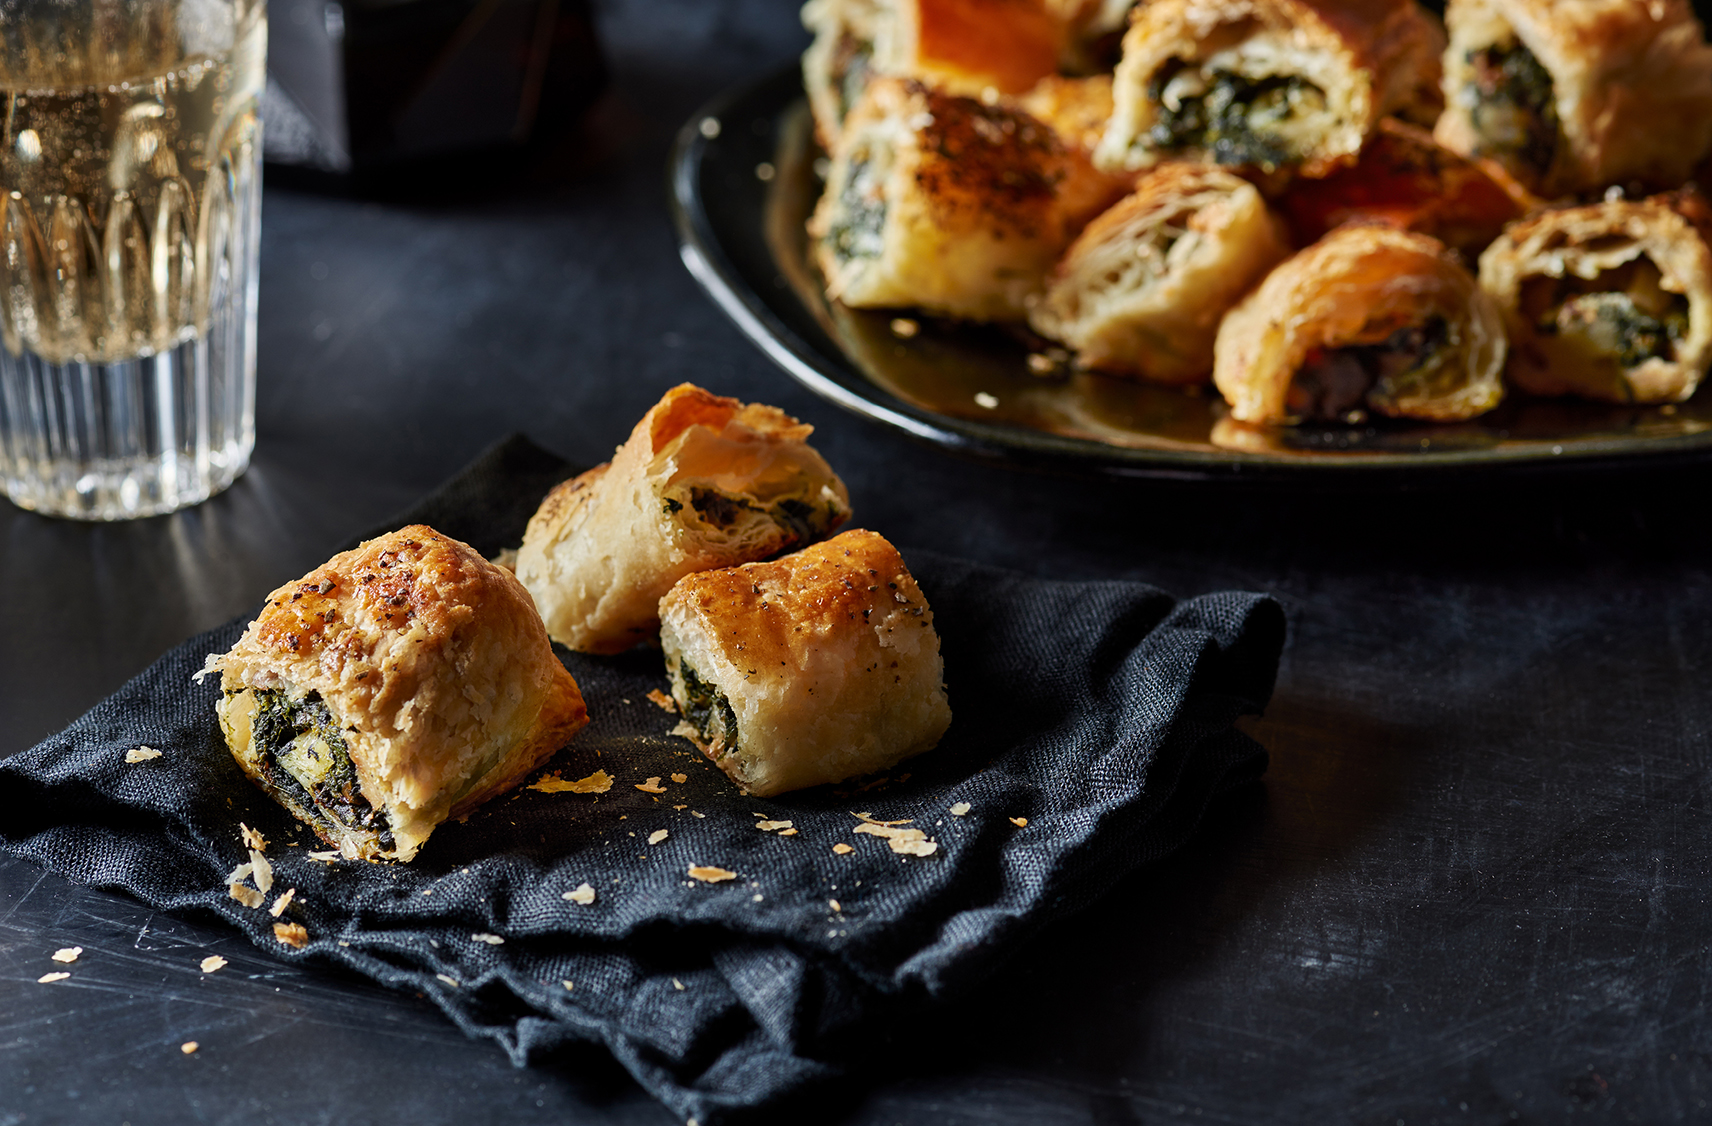 3 crispy rolls of puff pastry stuffed with Roquefort, walnuts and spinach.